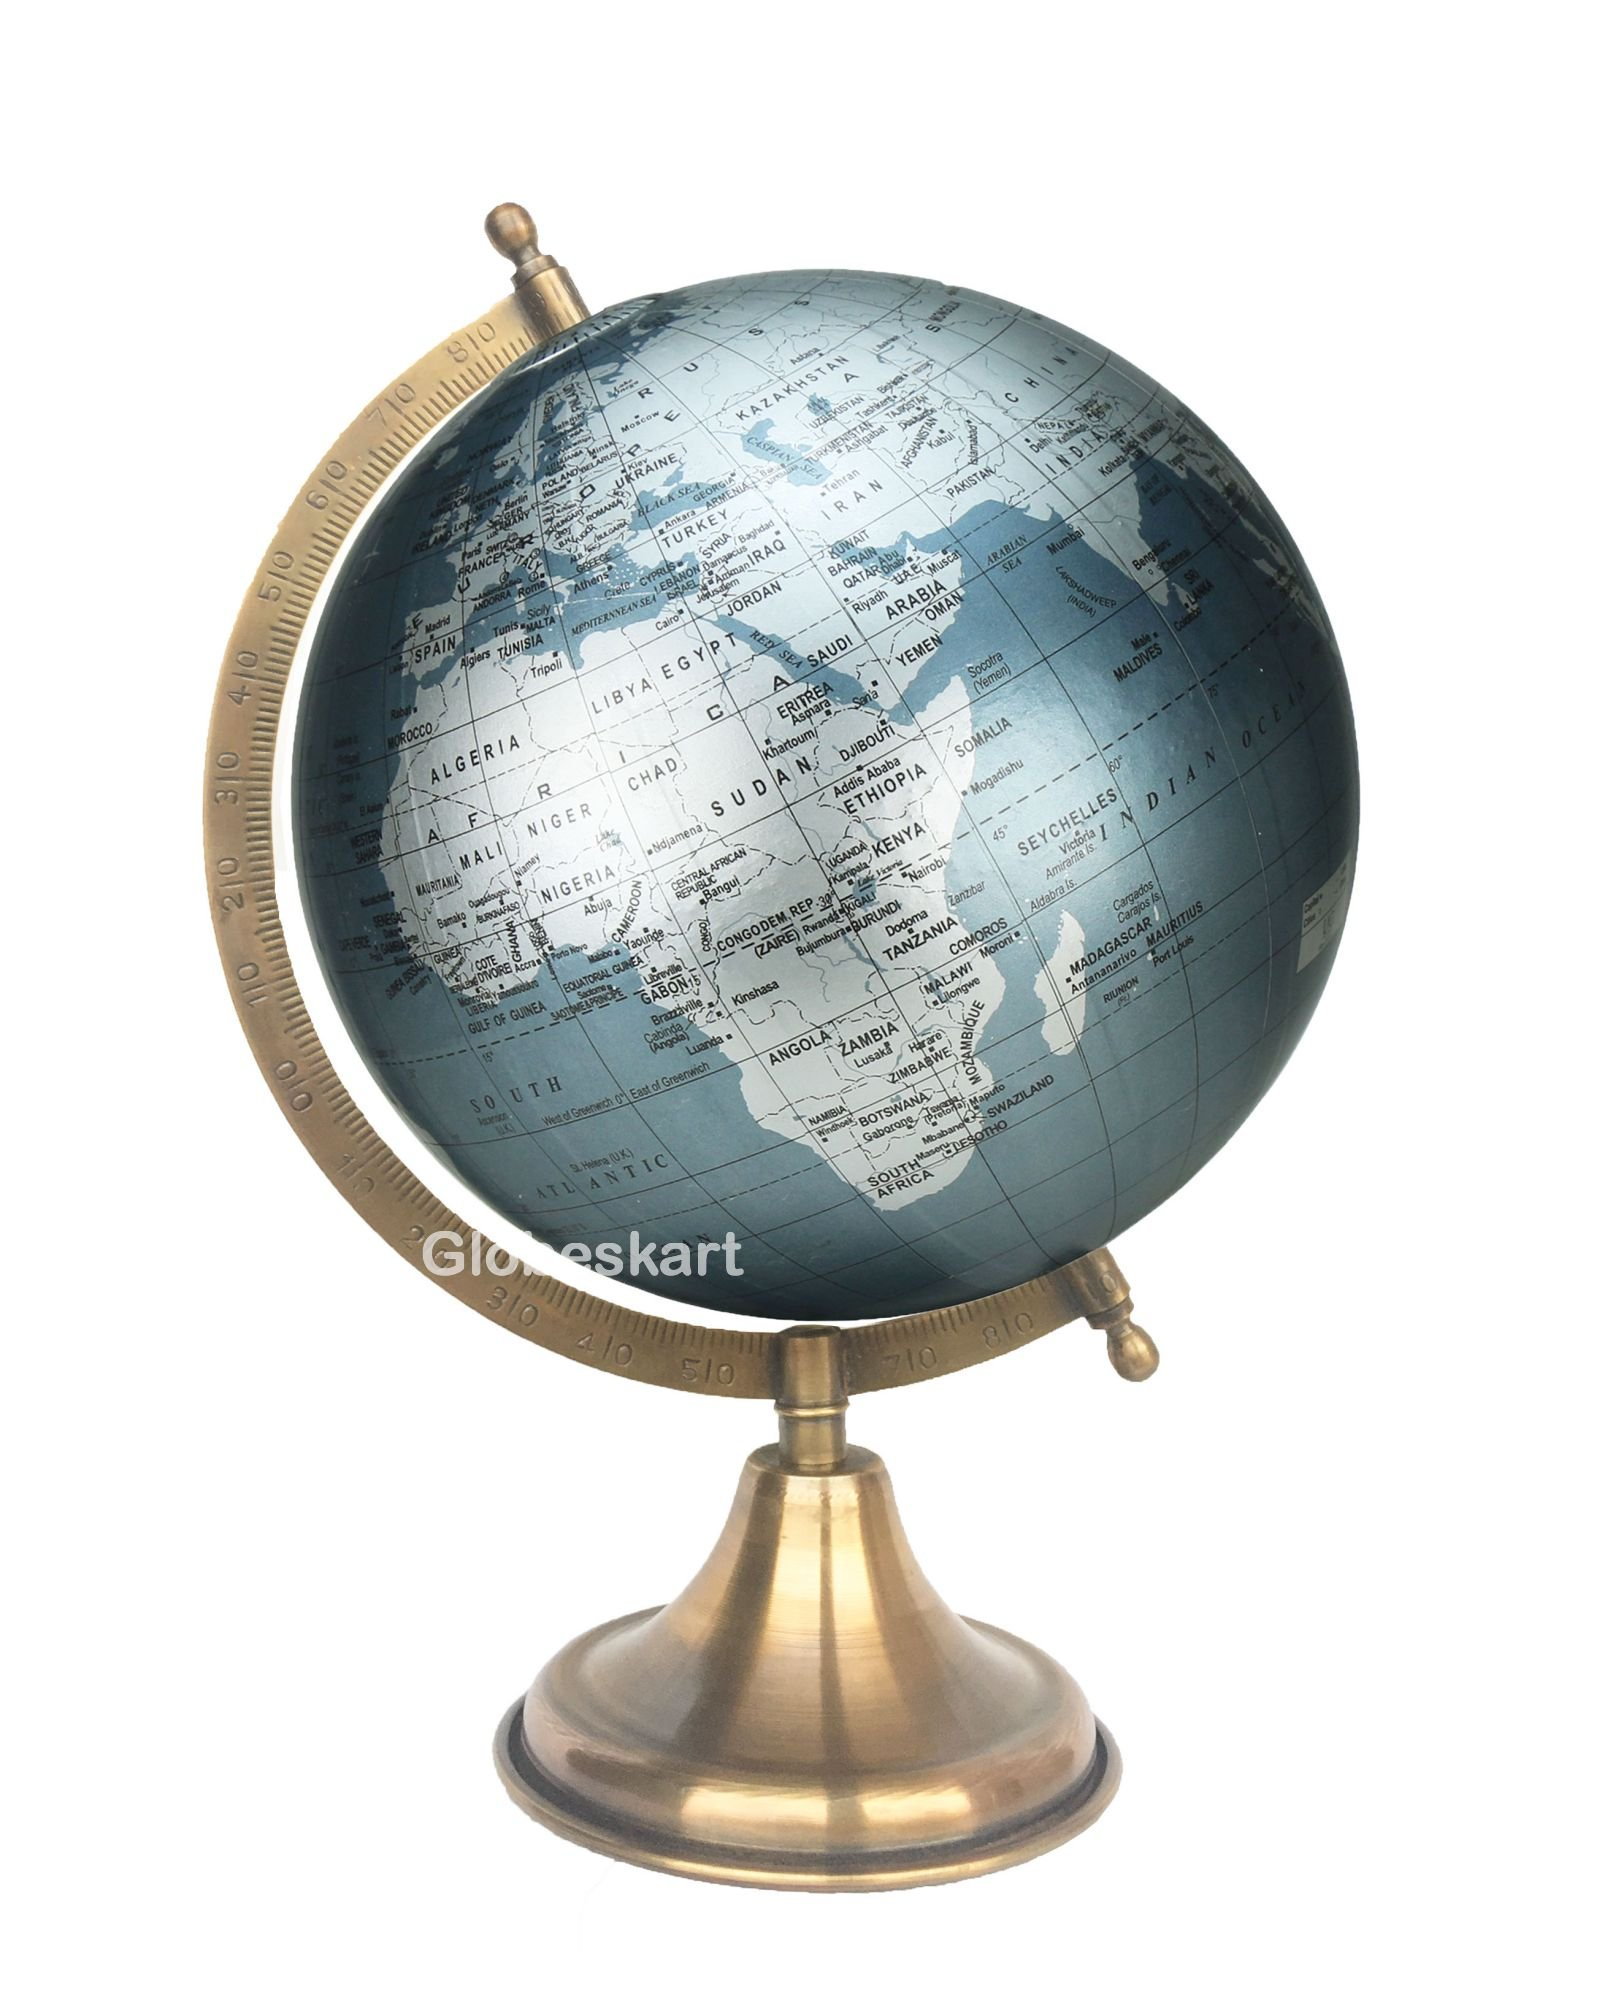 Globeskart Educational/Antique Globe with Brass Antique Arc and Base / World Globe / Home Decor / Office Decor / Gift Item / 8 inches (Surahi) (Marquise Silver) (B01MT6PLE2) Amazon Price History, Amazon Price Tracker